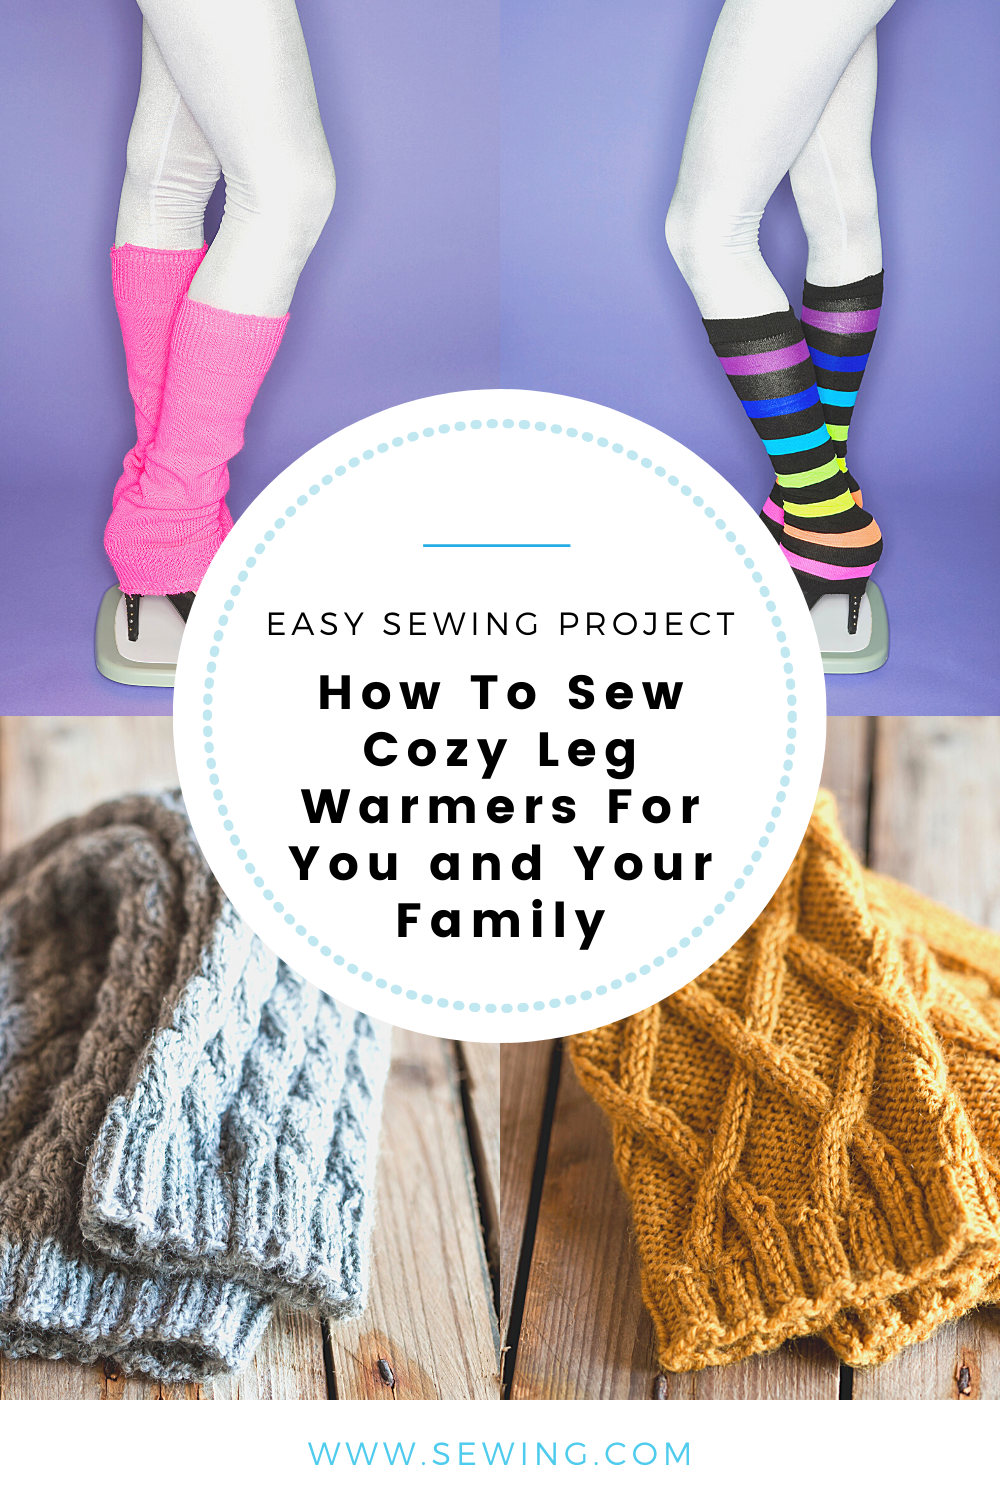 placard | How To Sew Cozy Leg Warmers For You and Your Family